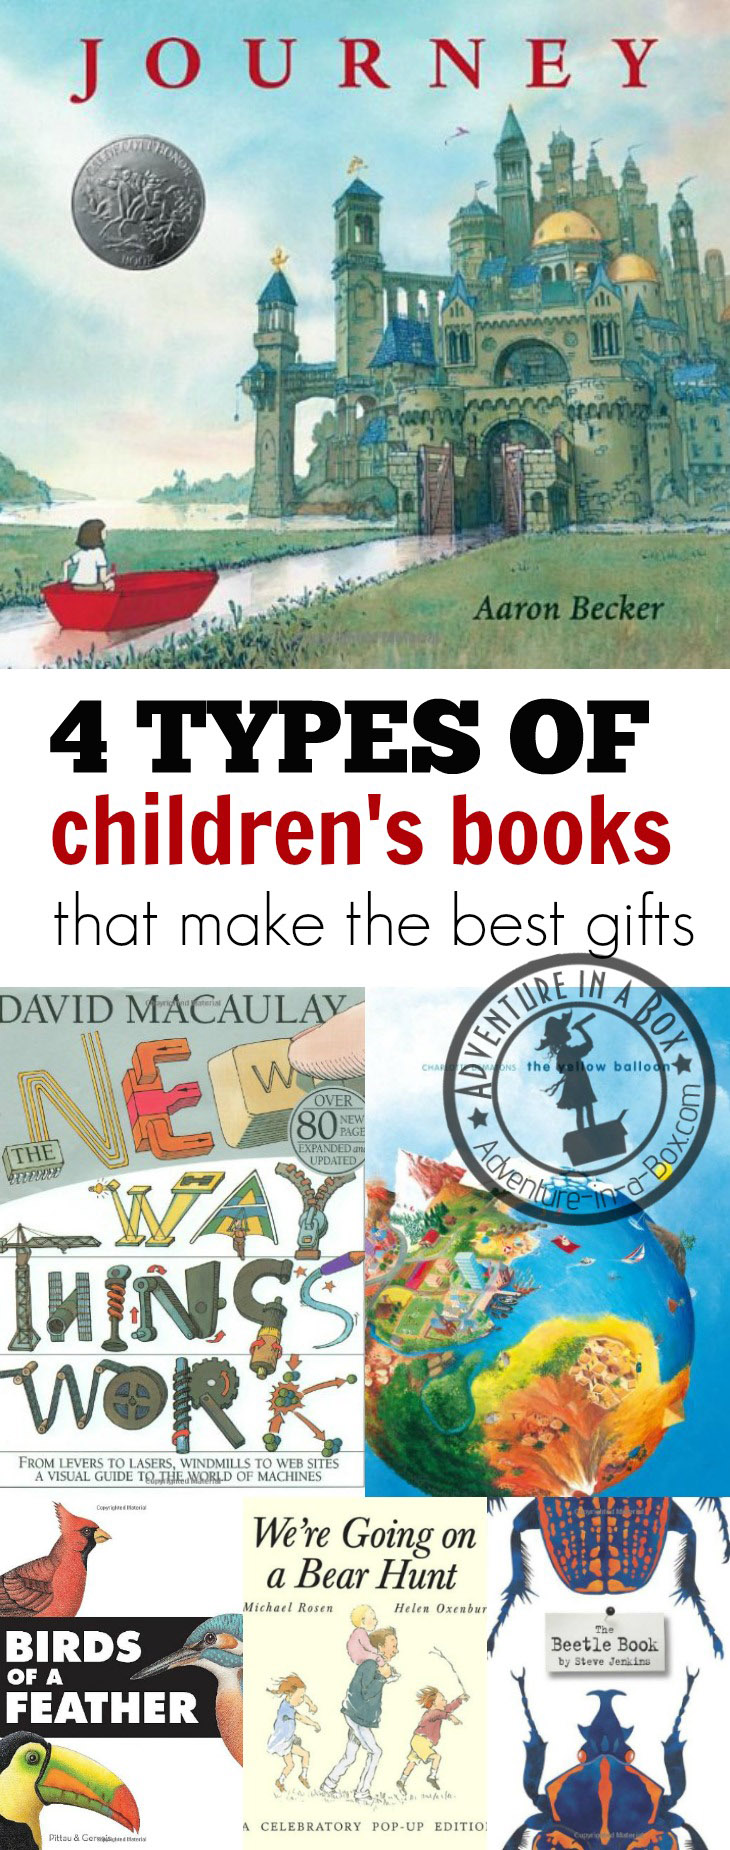 4 Types of Children's Books That Make the Best Gifts: for Christmas, for birthdays, and other holidays, choose a book for a gift!